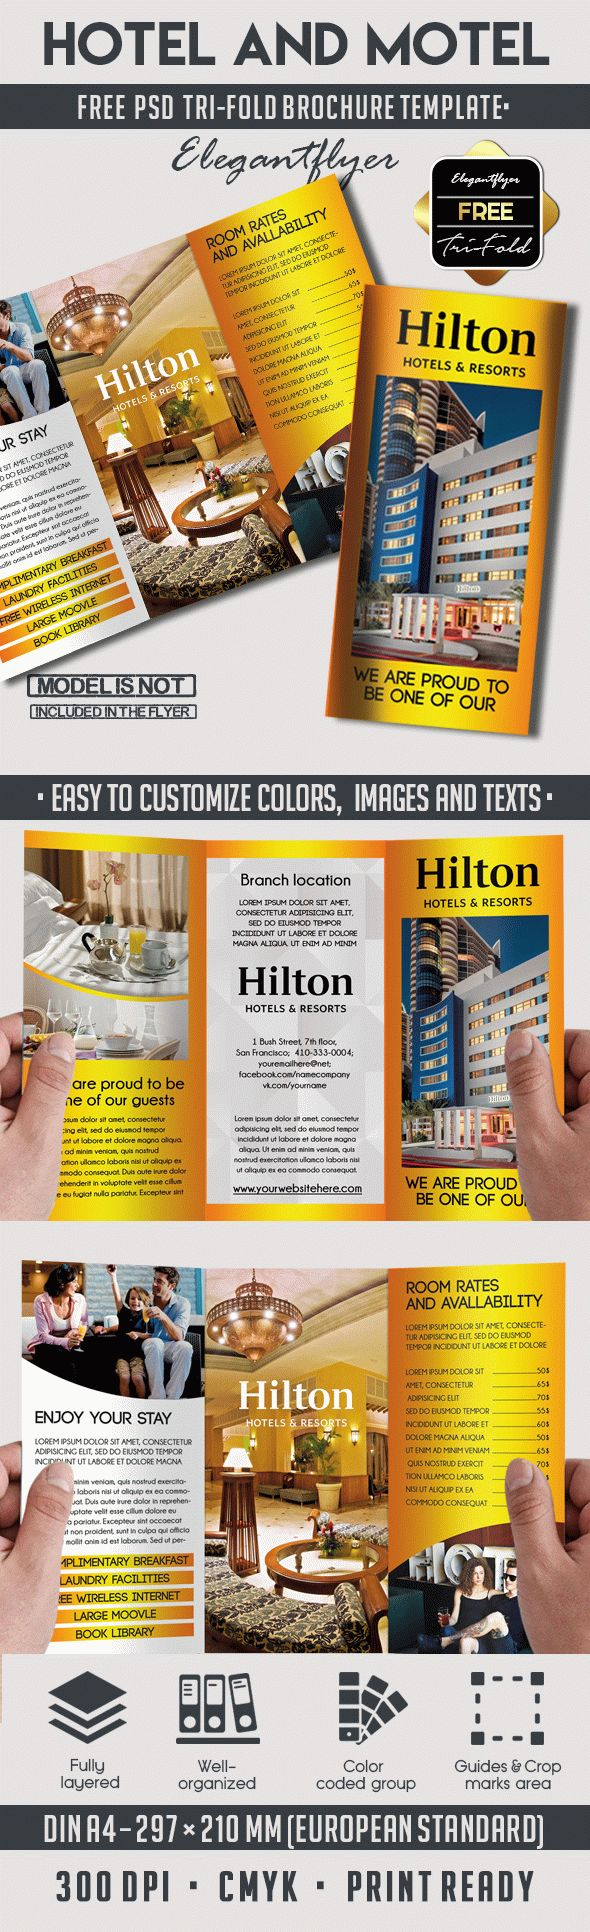 free tri fold brochure template psd - free hotel and motel tri fold psd brochure by elegantflyer